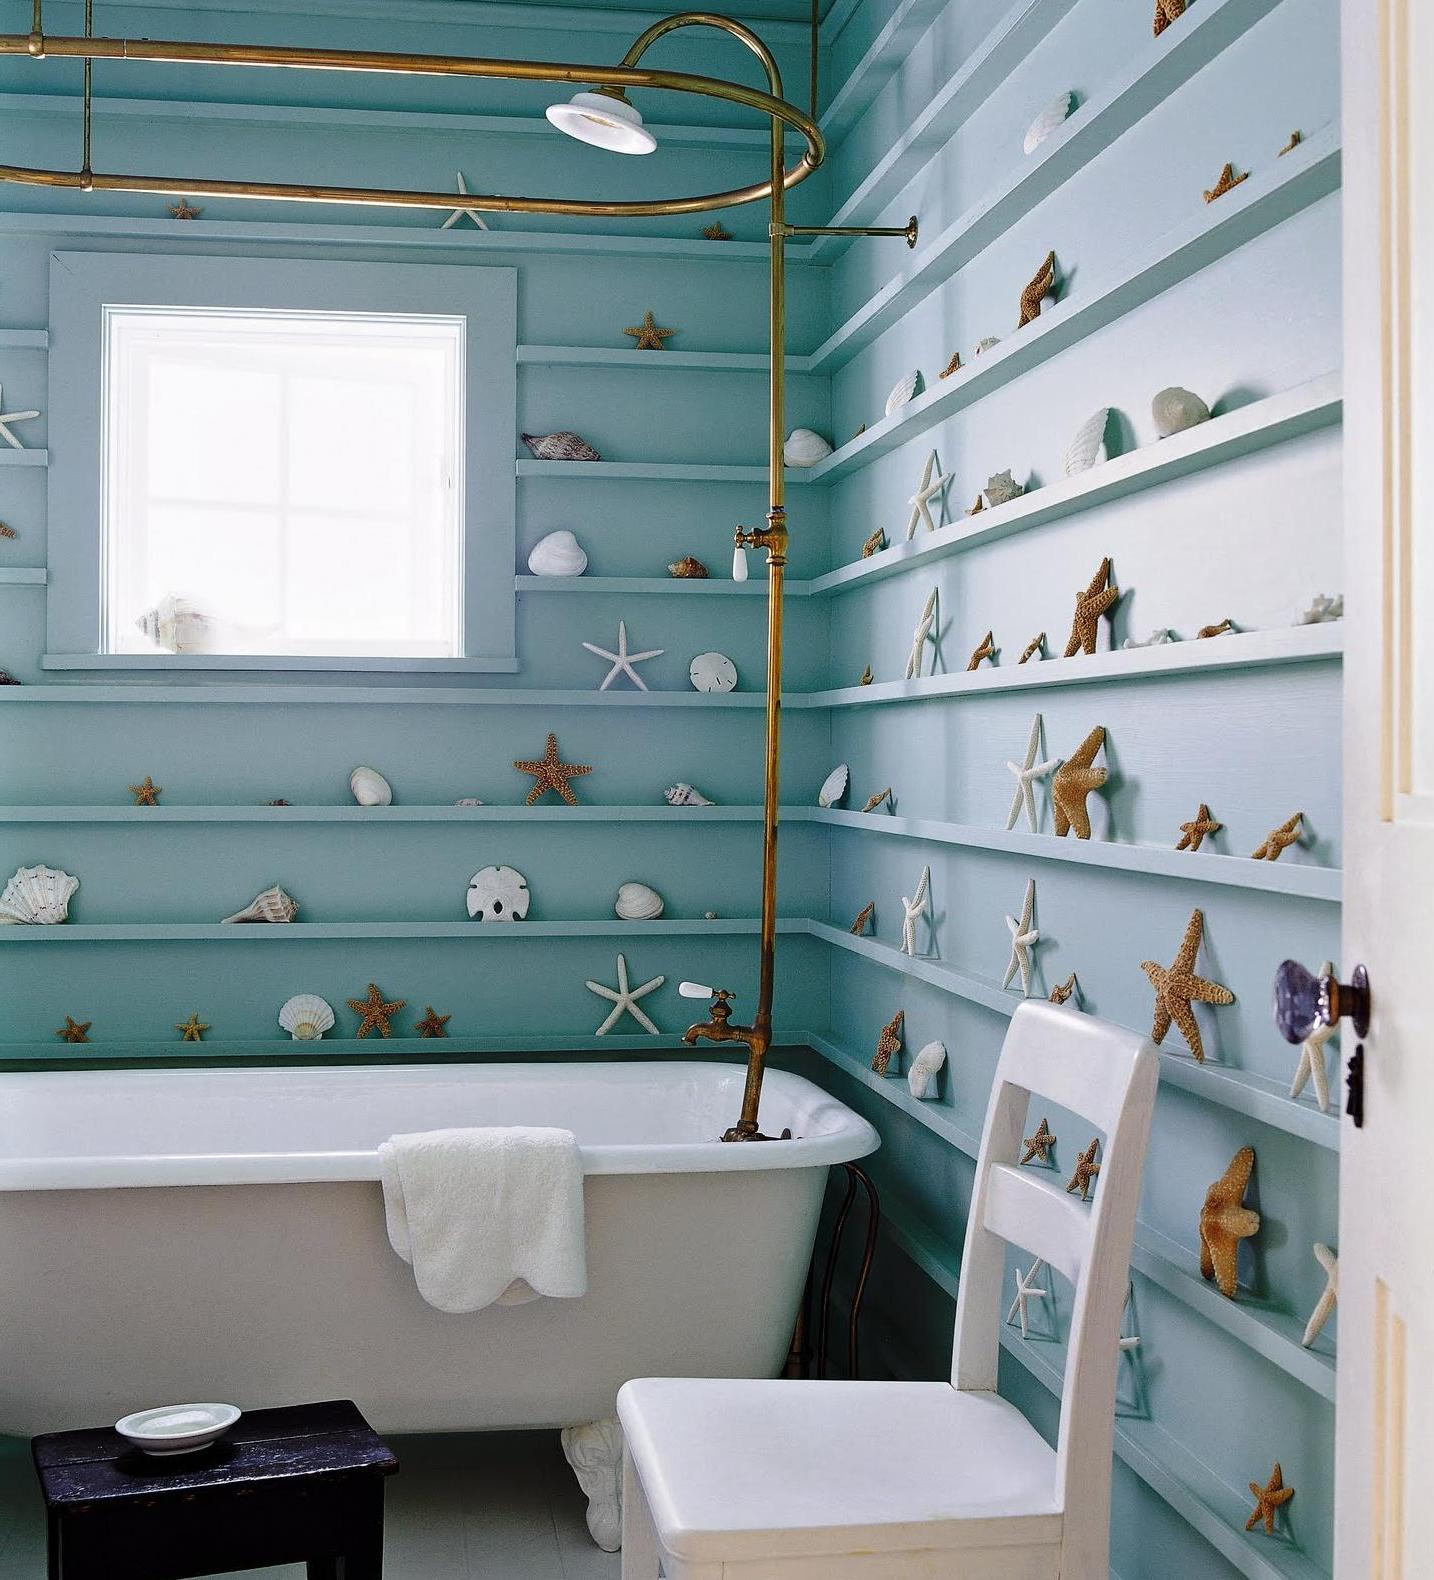 10 beach house decor ideas - Home bathrooms designs ...